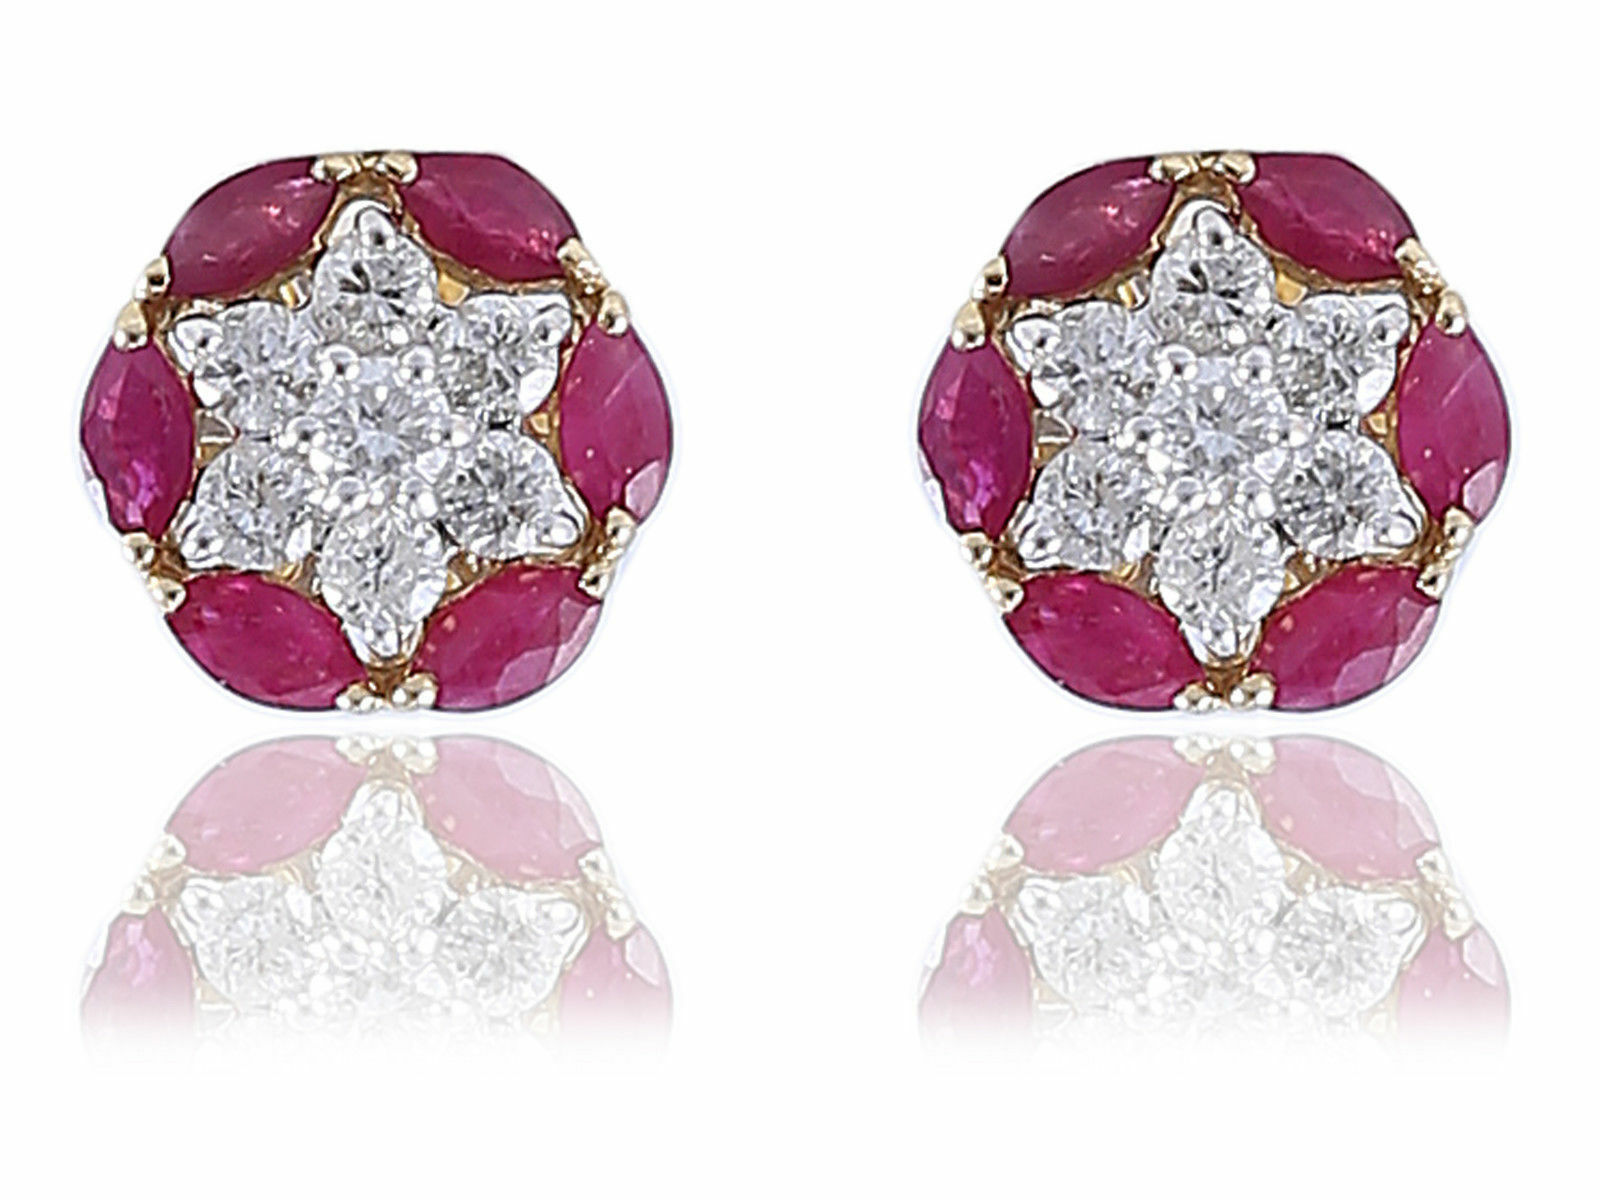 2.18 Cts Round Brilliant Cut Diamonds Ruby Stud Earrings In Fine 18K Yellow gold